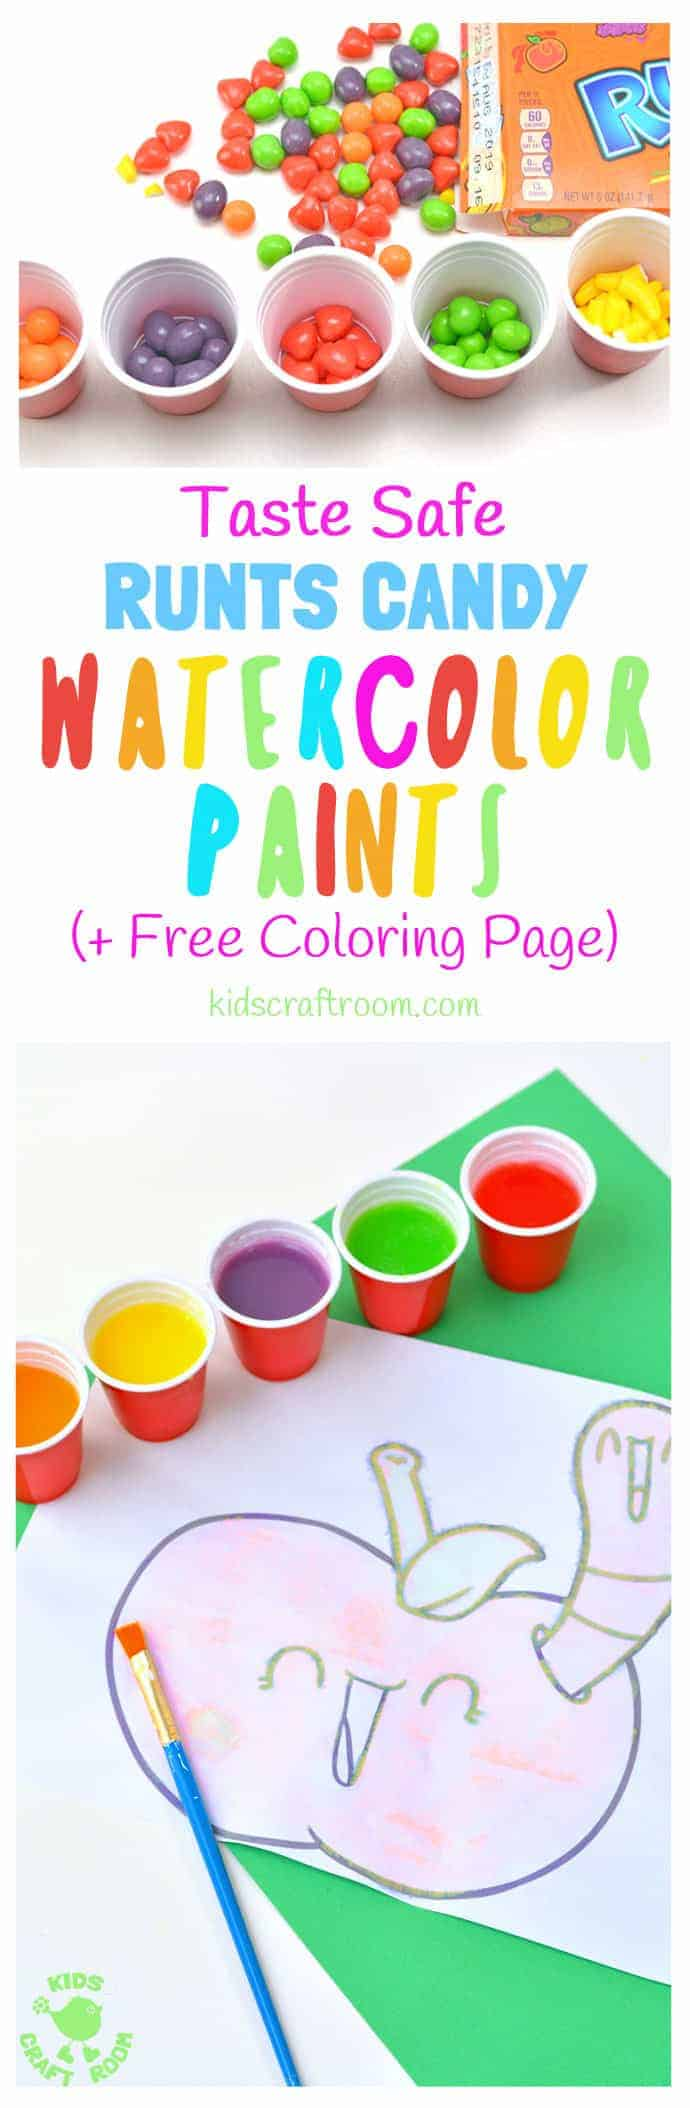 Have you tried making your own paints before? This Runts Watercolor Paint Recipe is really easy and fun to make. It's fruity, colorful, taste safe and there's a printable apple coloring sheet too. What a fun way to enjoy some fruit themed sensory art! #apples #painting #kidspainting #kidsart #ediblepaint #kidscrafts #kidsactivities #kidscraftroom #backtoschool #applecrafts #sensory #sensoryplay #tastesafe